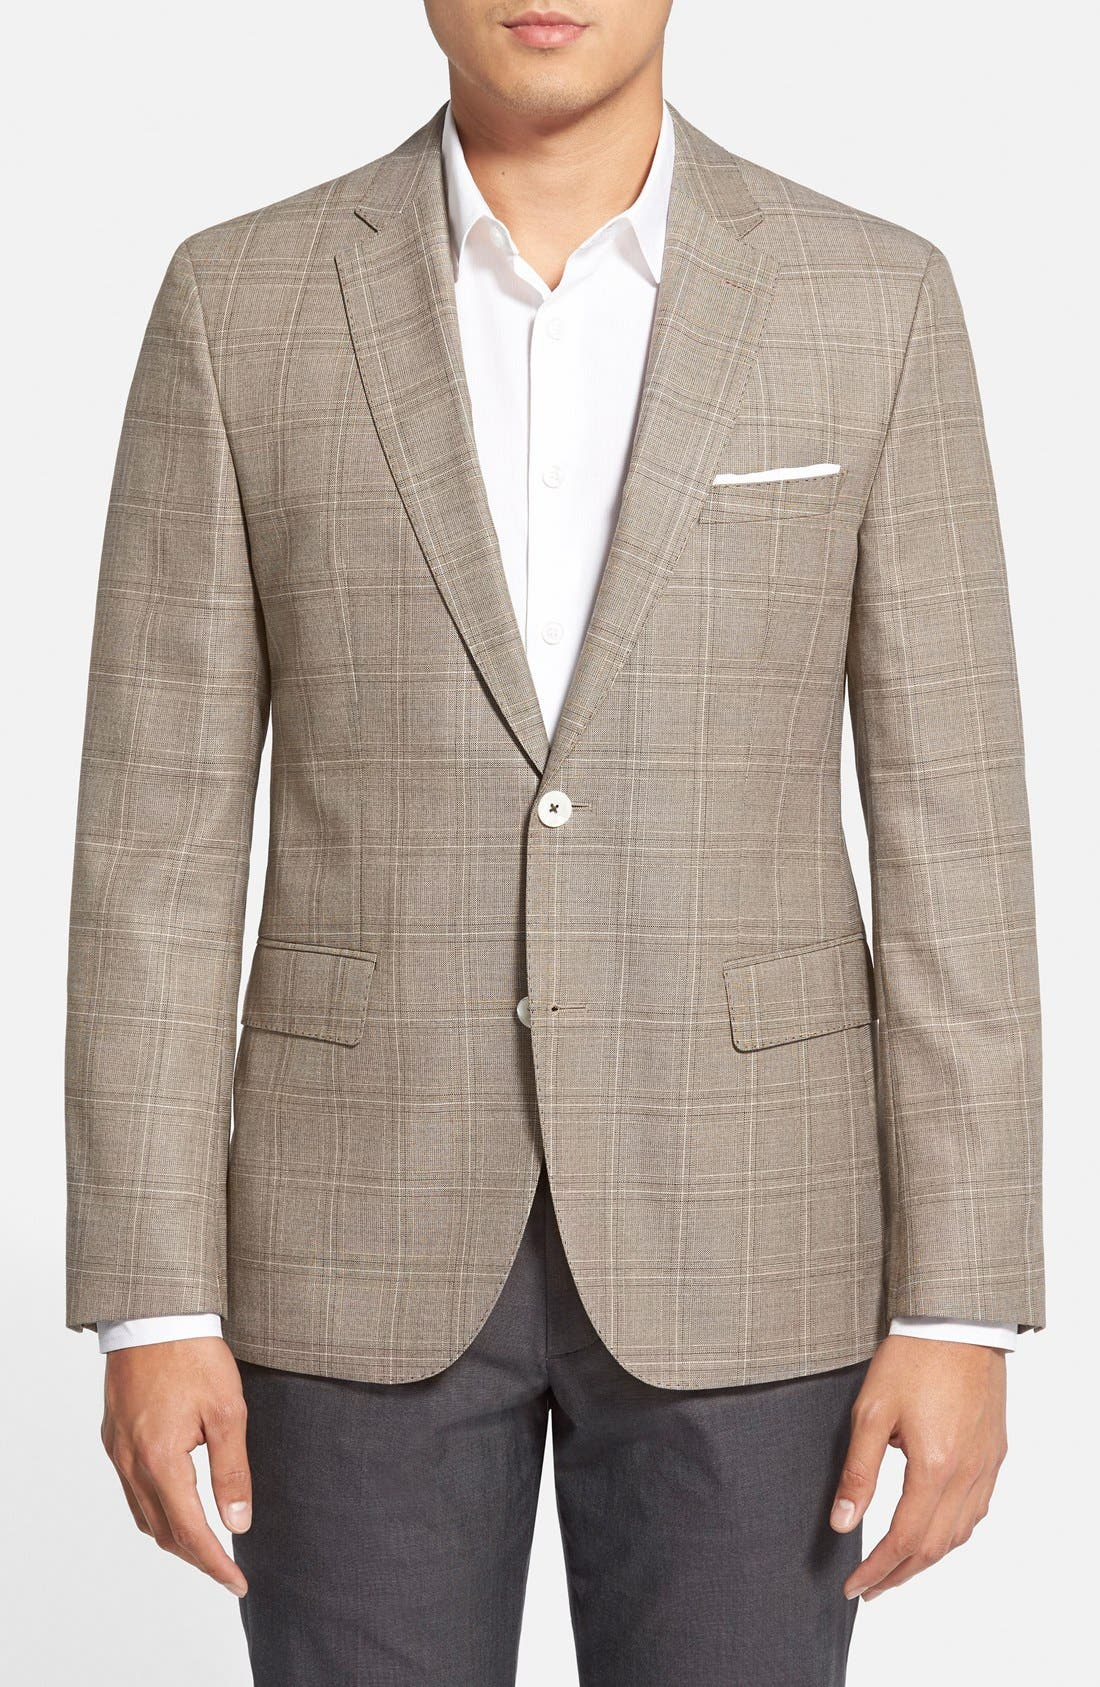 Alternate Image 1 Selected - BOSS 'Jarett' Trim Fit Plaid Wool Blend Sport Coat